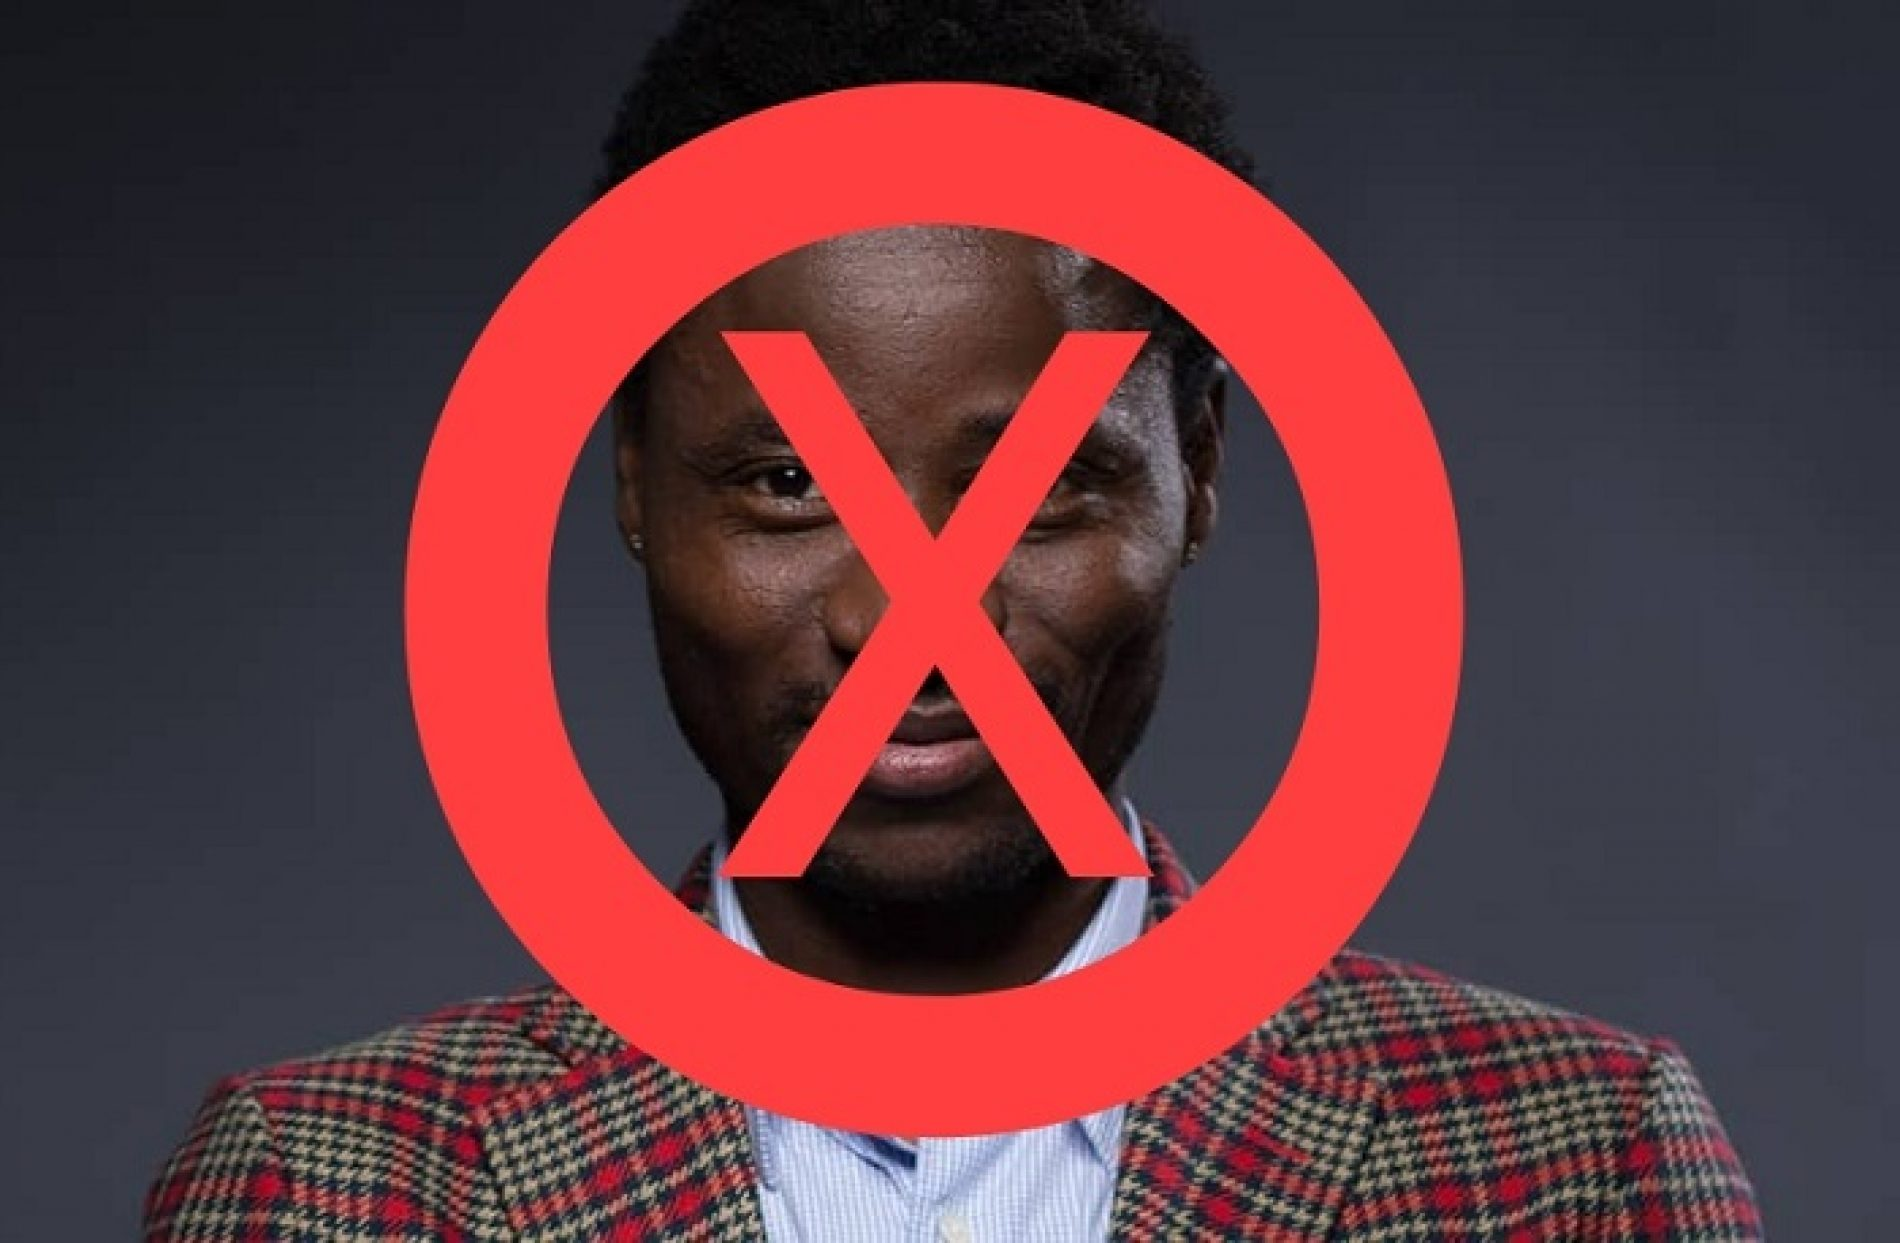 BISI ALIMI IS NOT THE FACE OF THE NIGERIAN LGBT